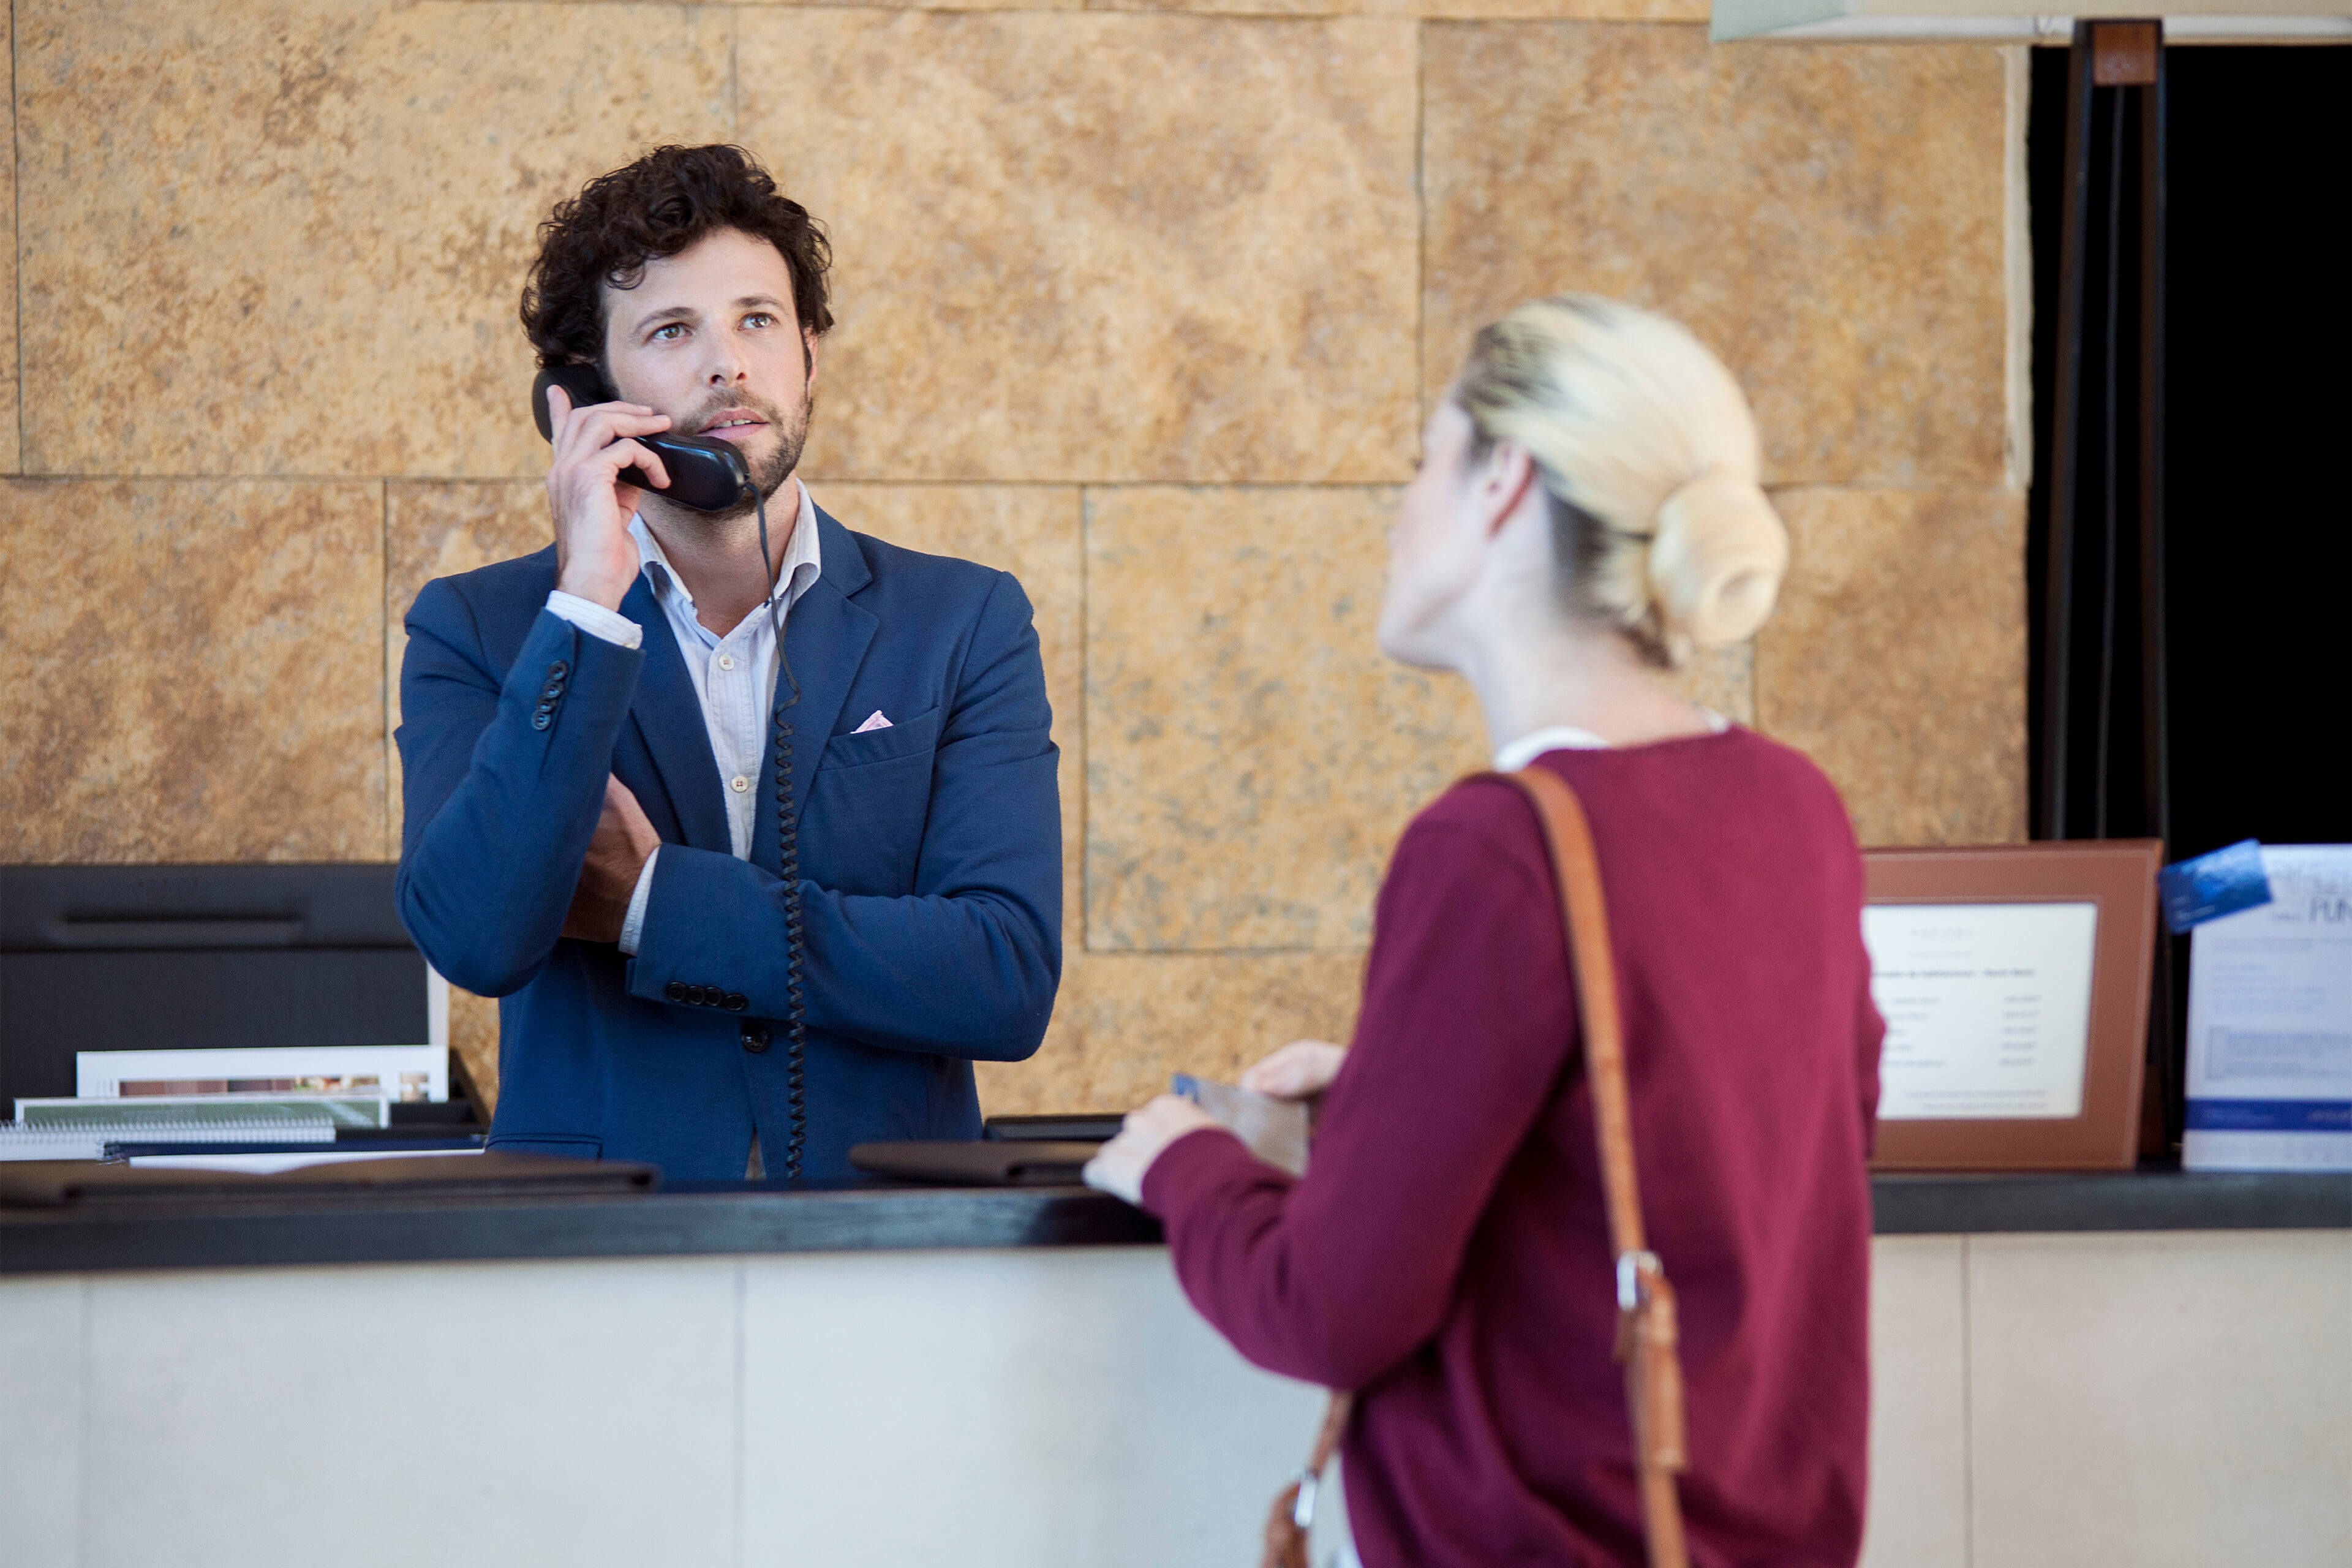 Male receptionist on the phone ignoring woman at the desk